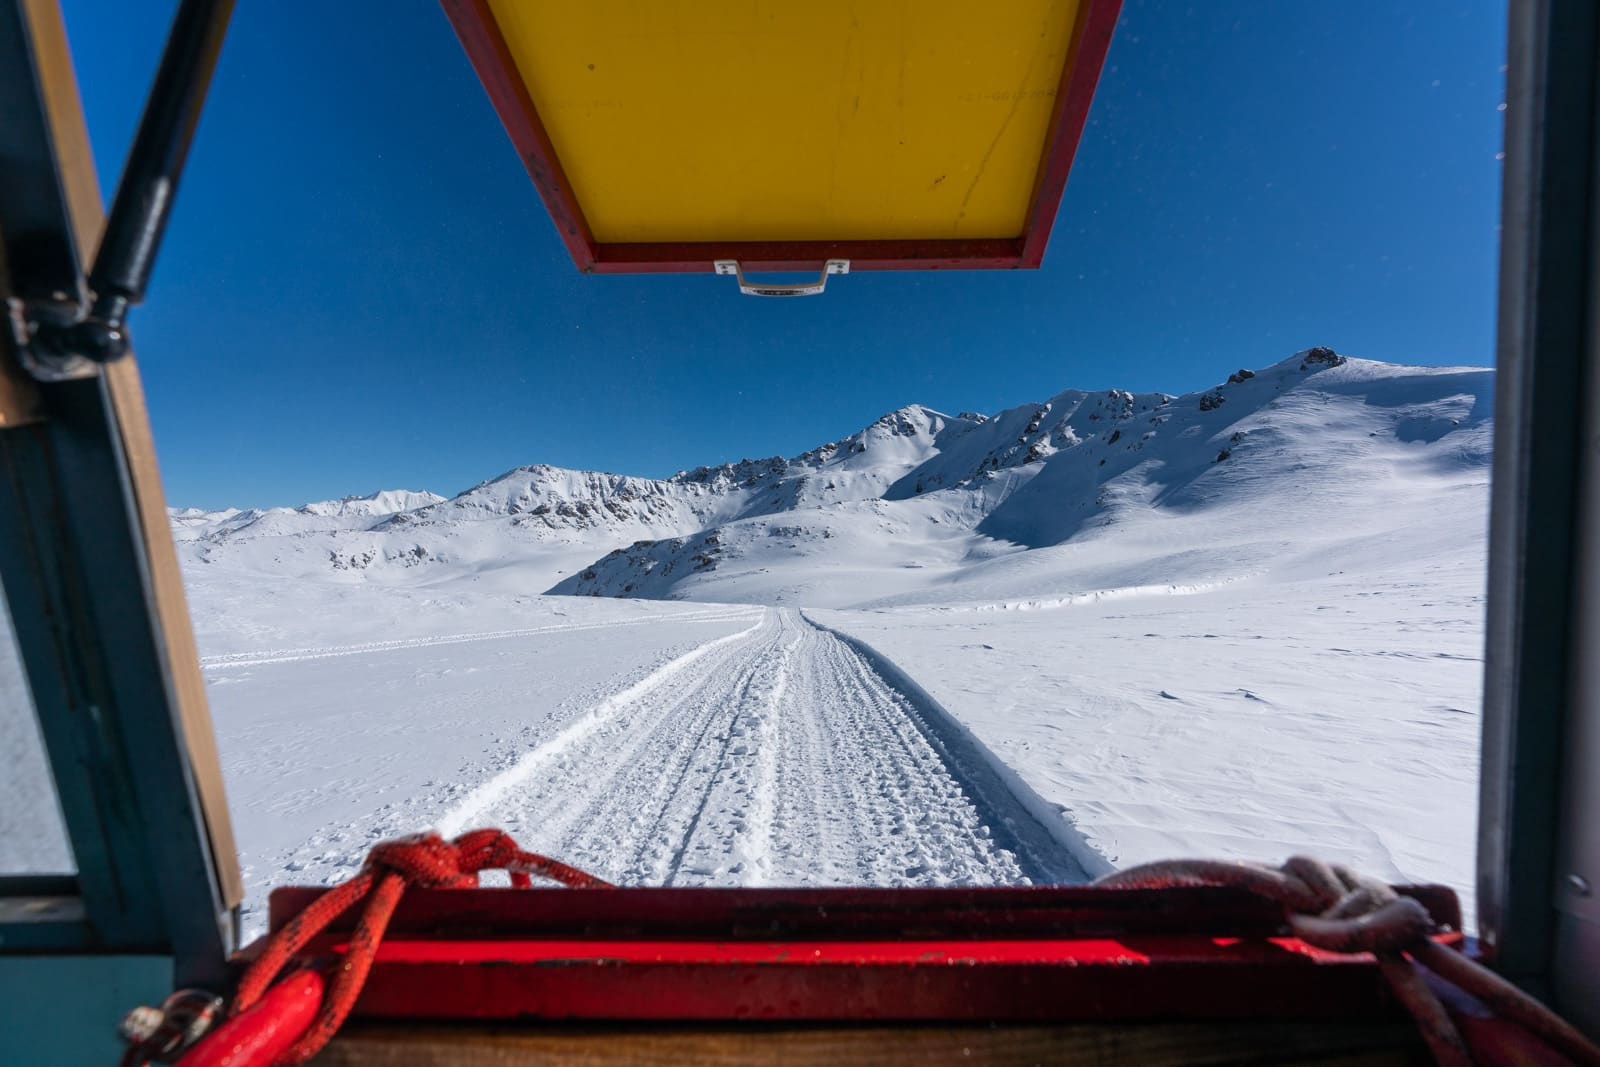 View of mountains from a snow cat for backcountry skiing near Jyrgalan, Kyrgyzstan in winter